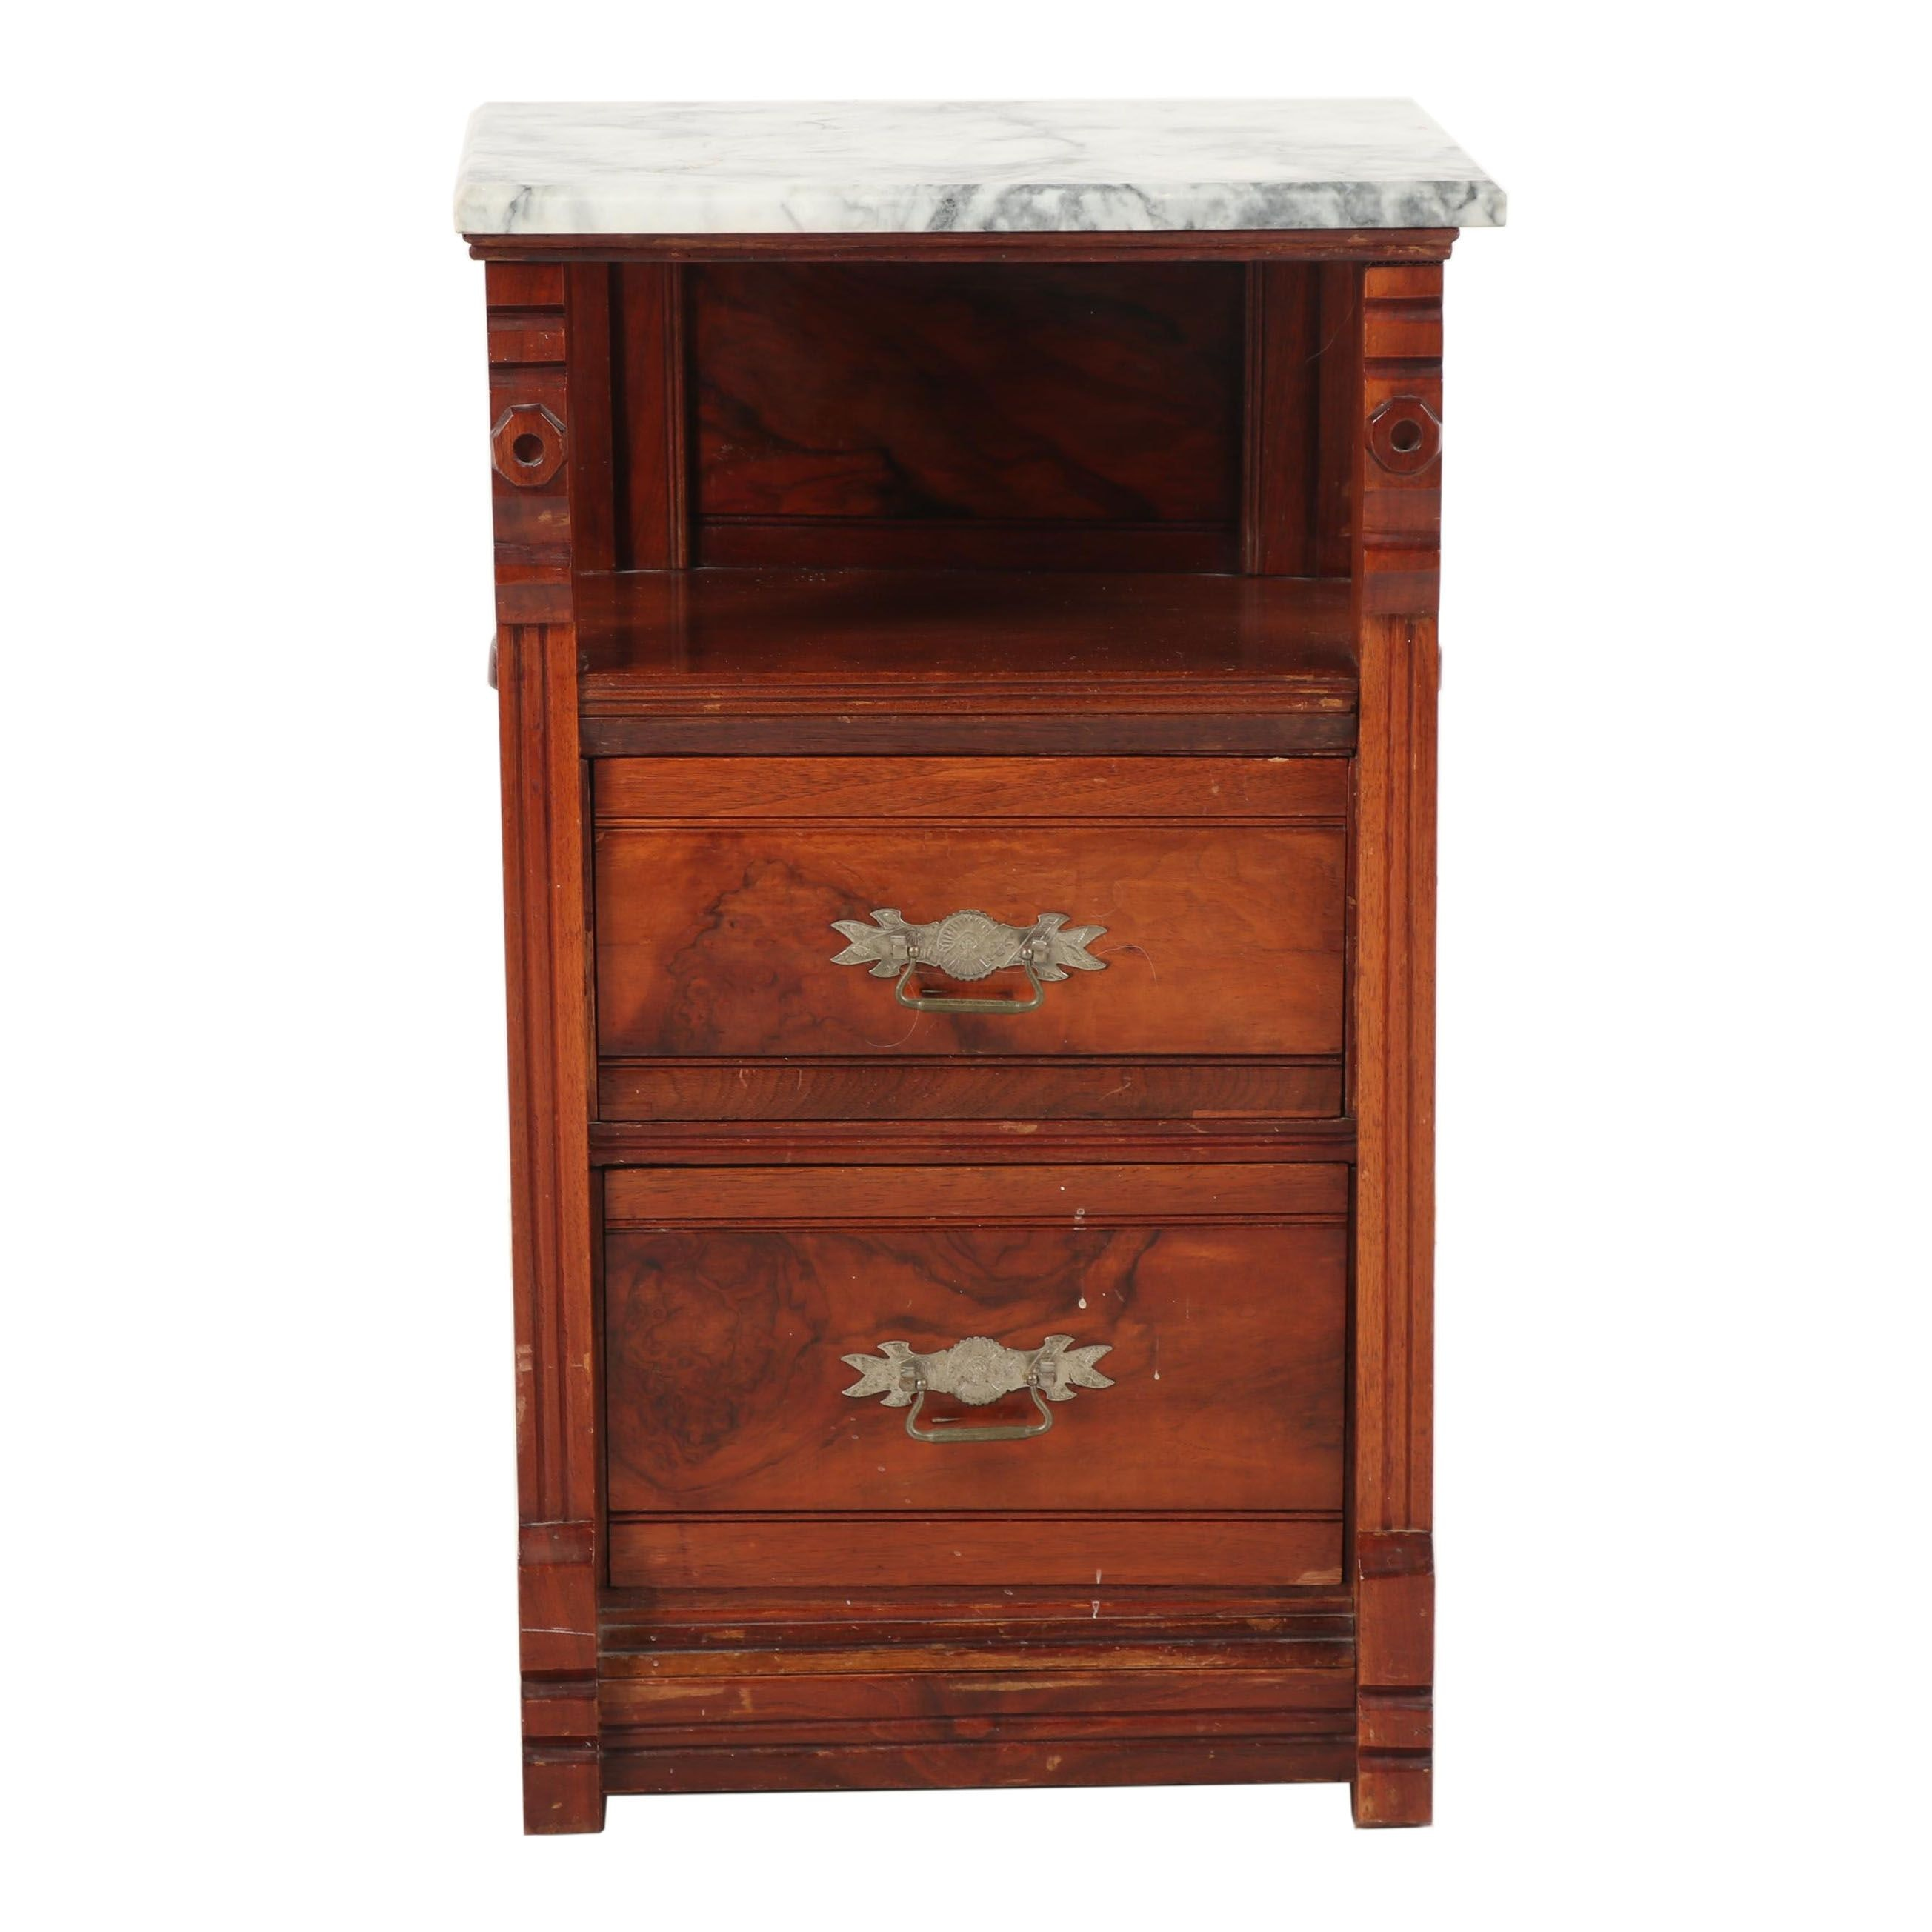 Small Wooden Cabinet with Marble Top